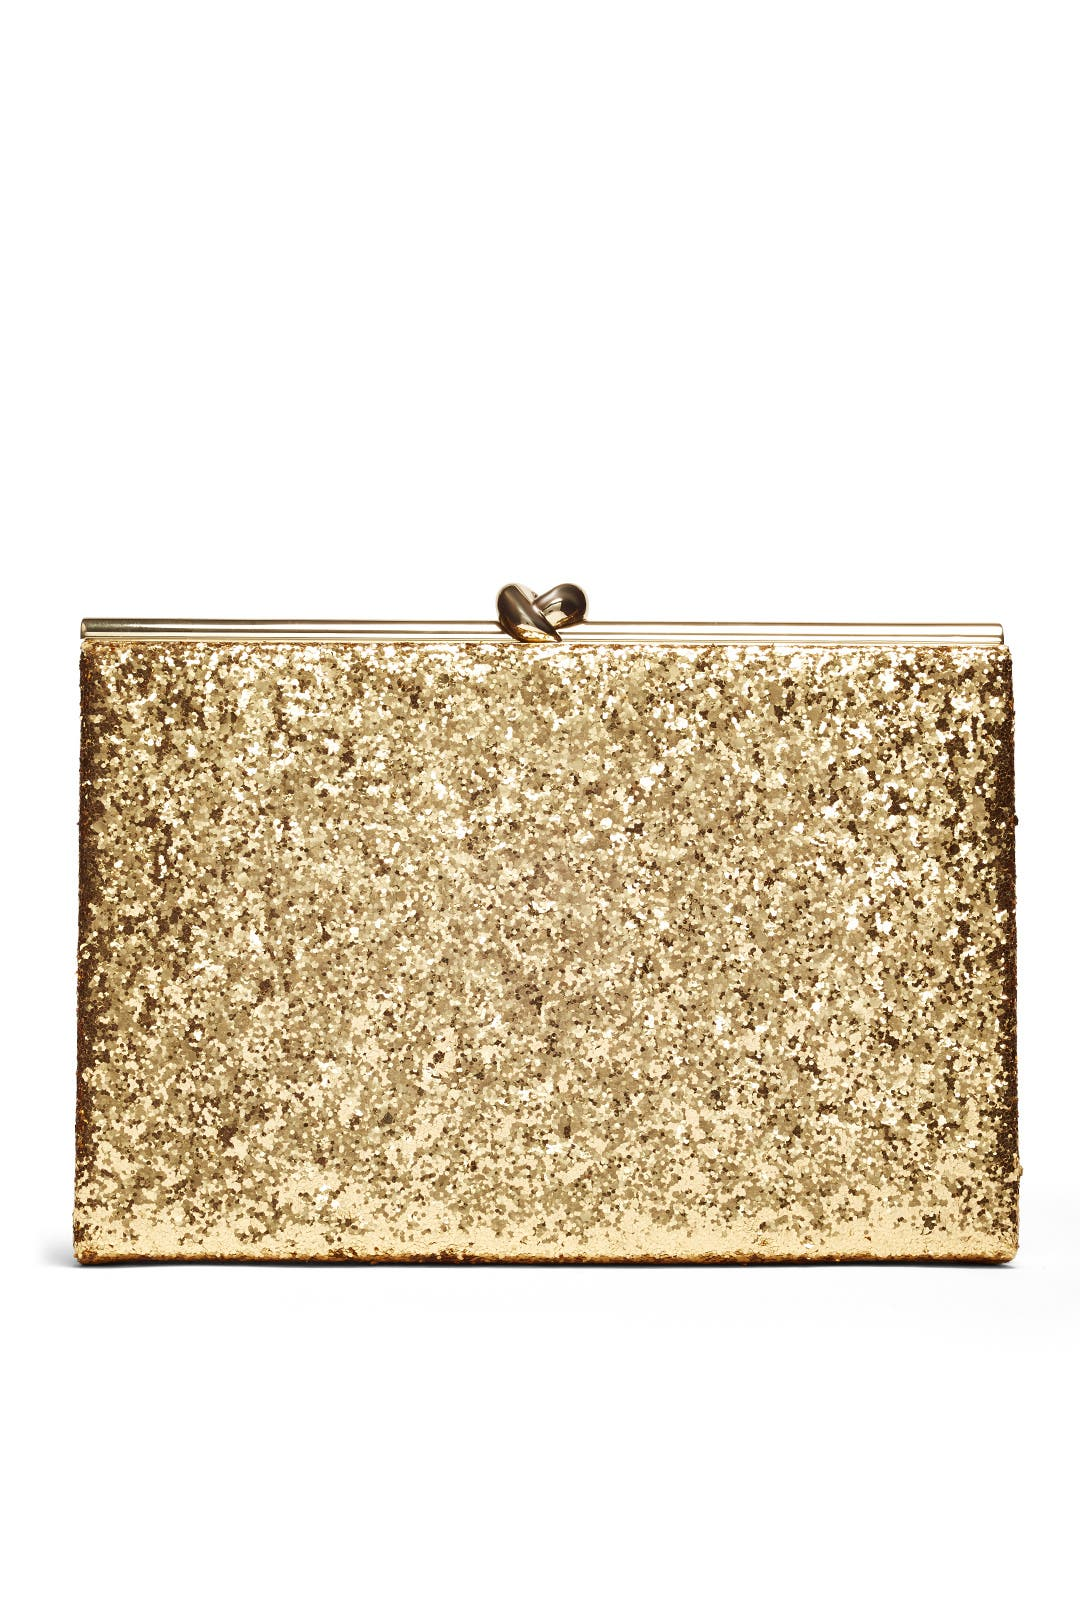 Gold Glitter Emanuelle Clutch by kate spade new york accessories ...